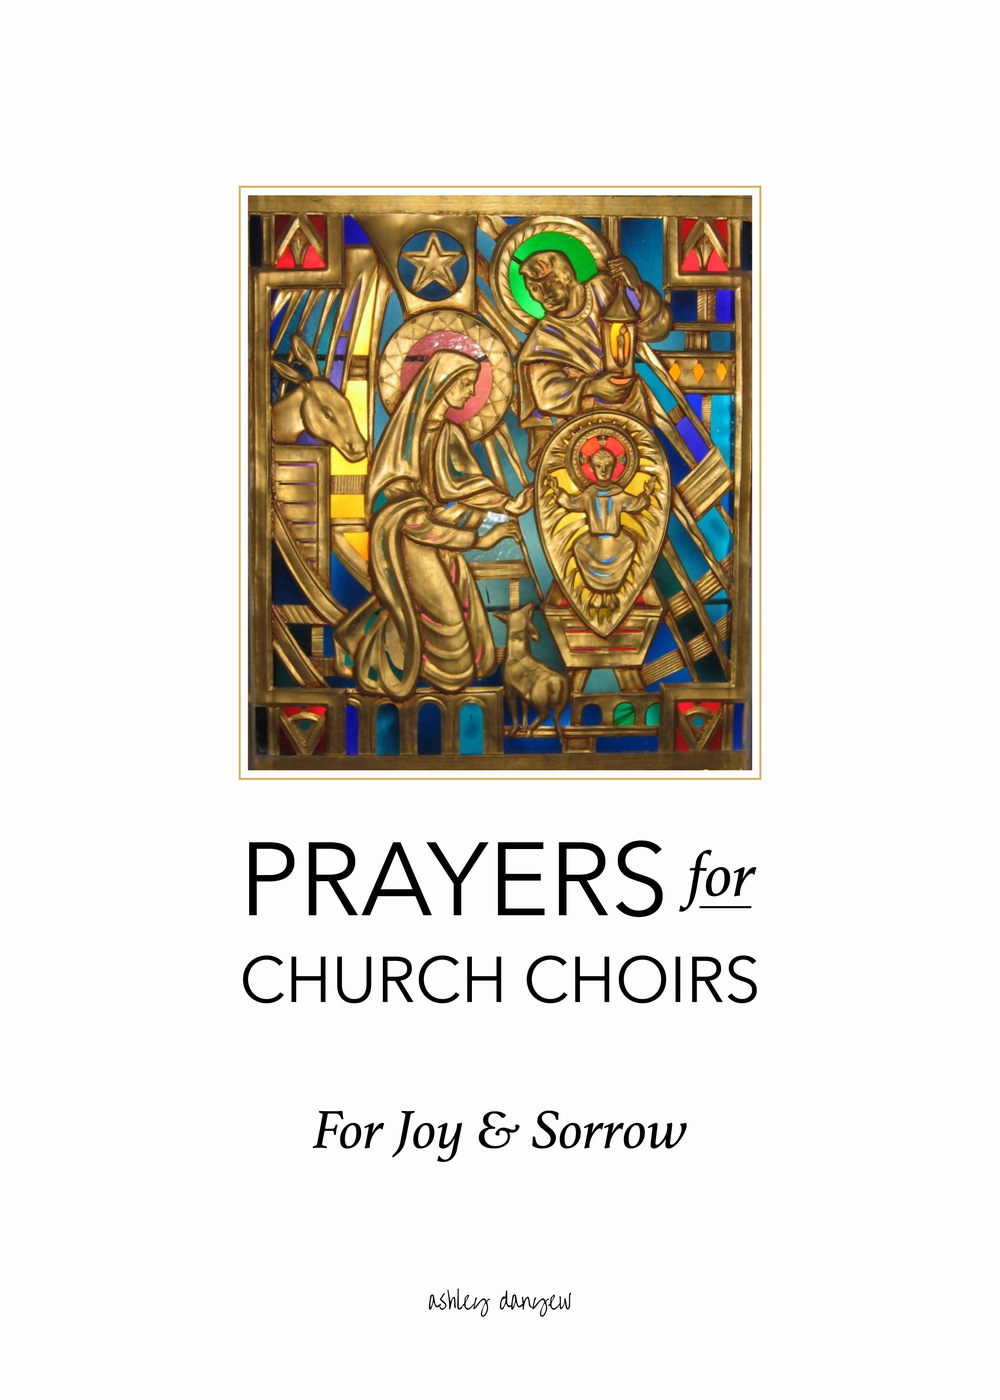 Prayers-for-Church-Choirs_Joy-and-Sorrow-01.png